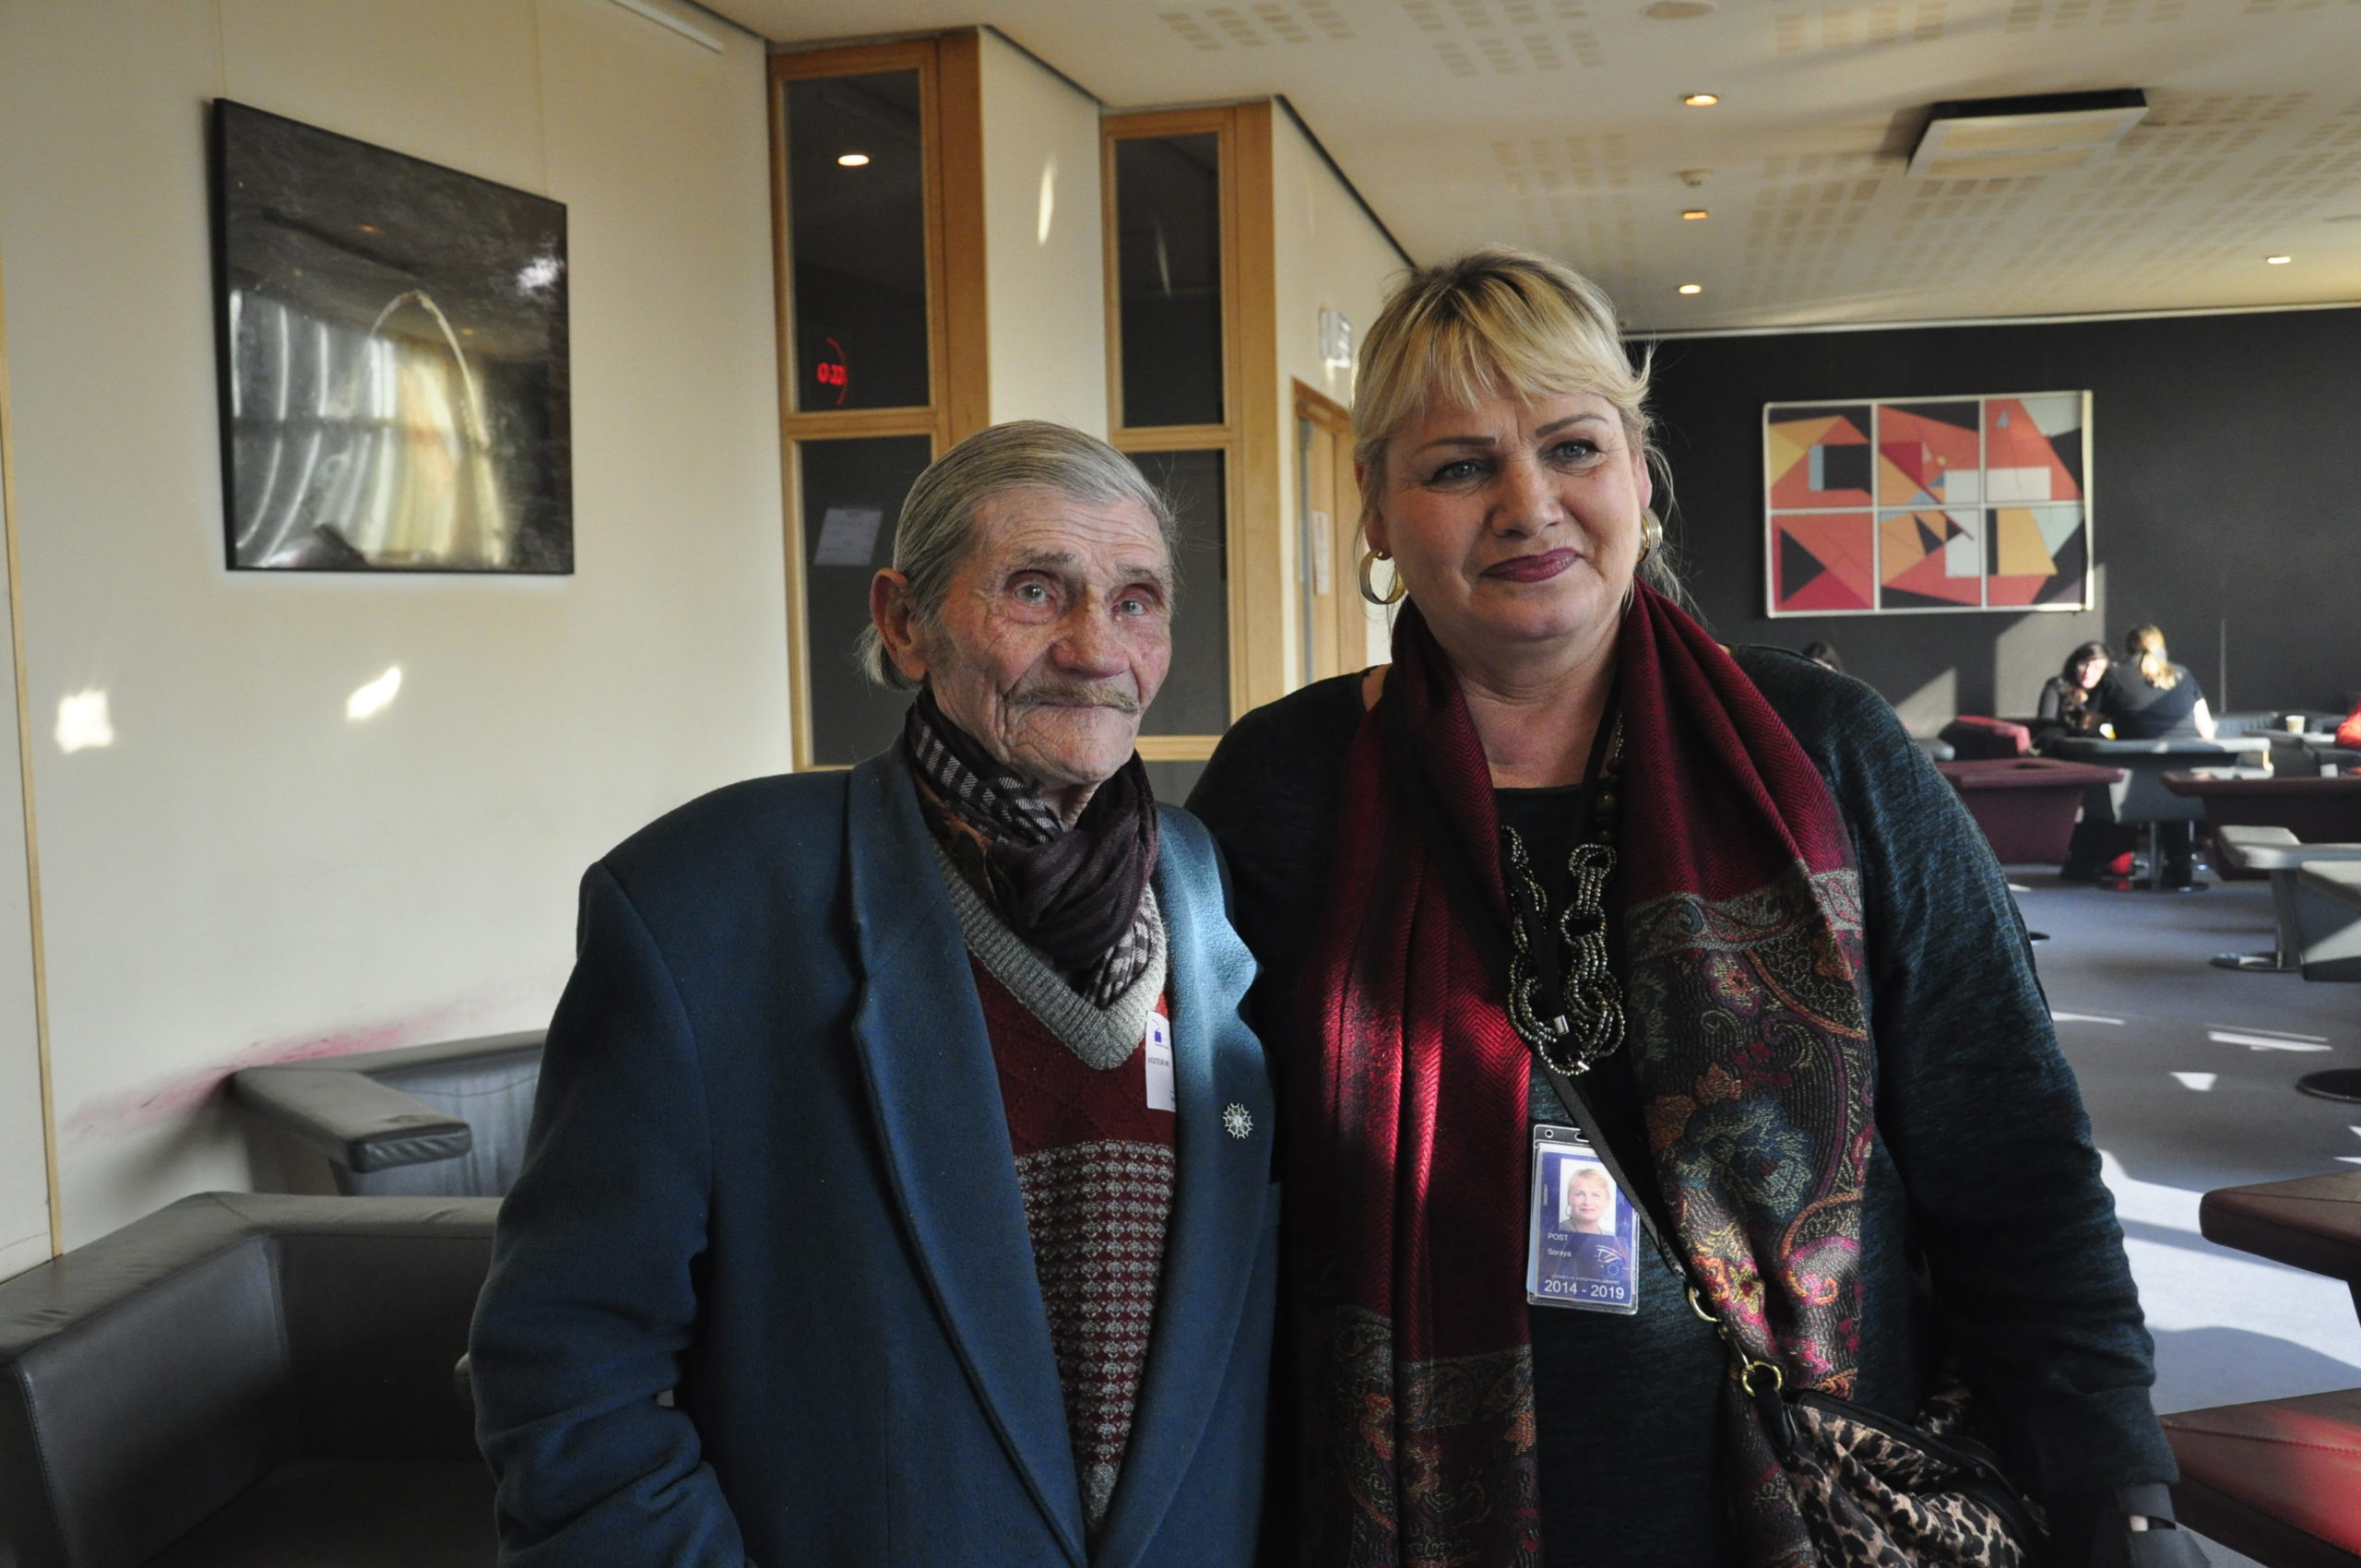 Soraya Post, former Member of the European Parliament and initiator of the resolution for the recognition of the Roma genocide, together with Raymond Gurême, a French Roma Holocaust survivor and fighter of the French resistance, who addressed members of parliament March 2015